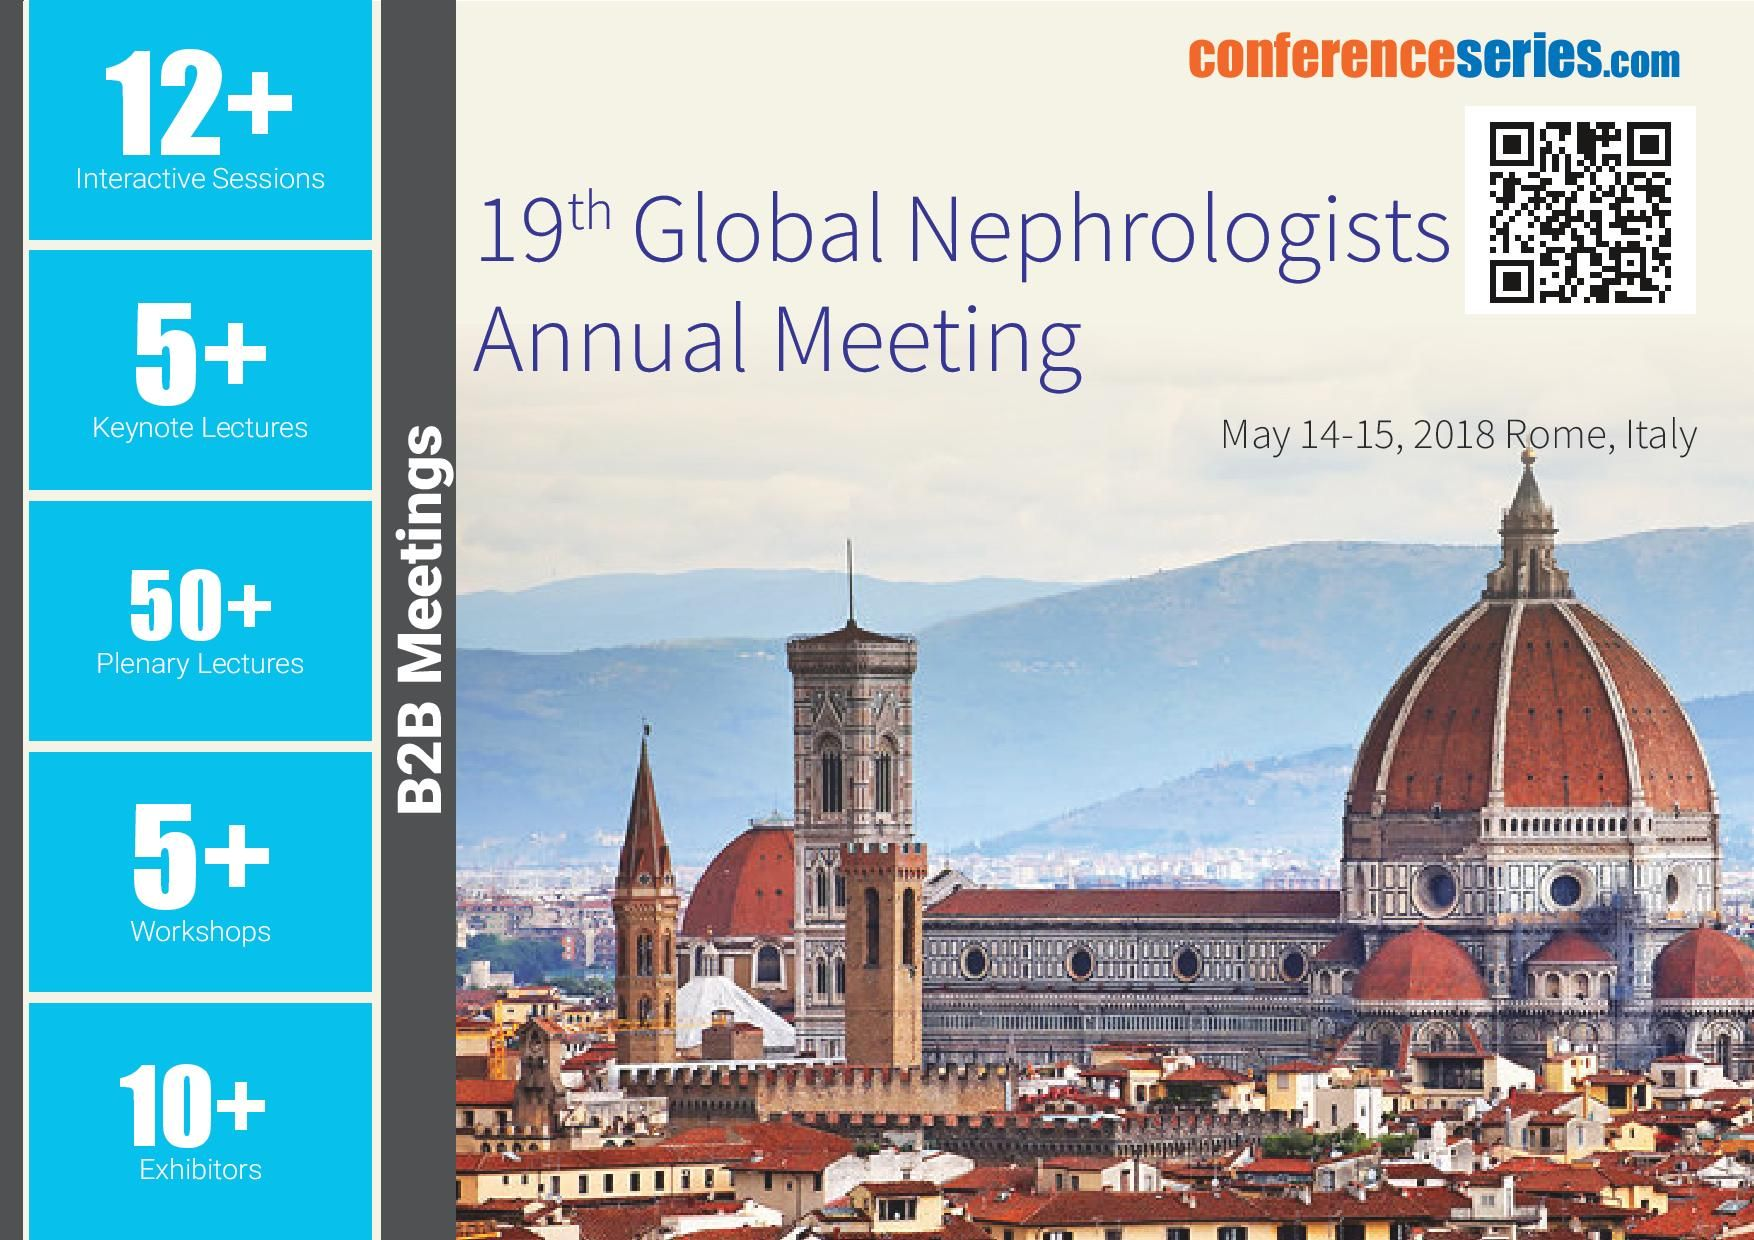 19th Global #Nephrologists Annual Meeting May 14-15, 2018